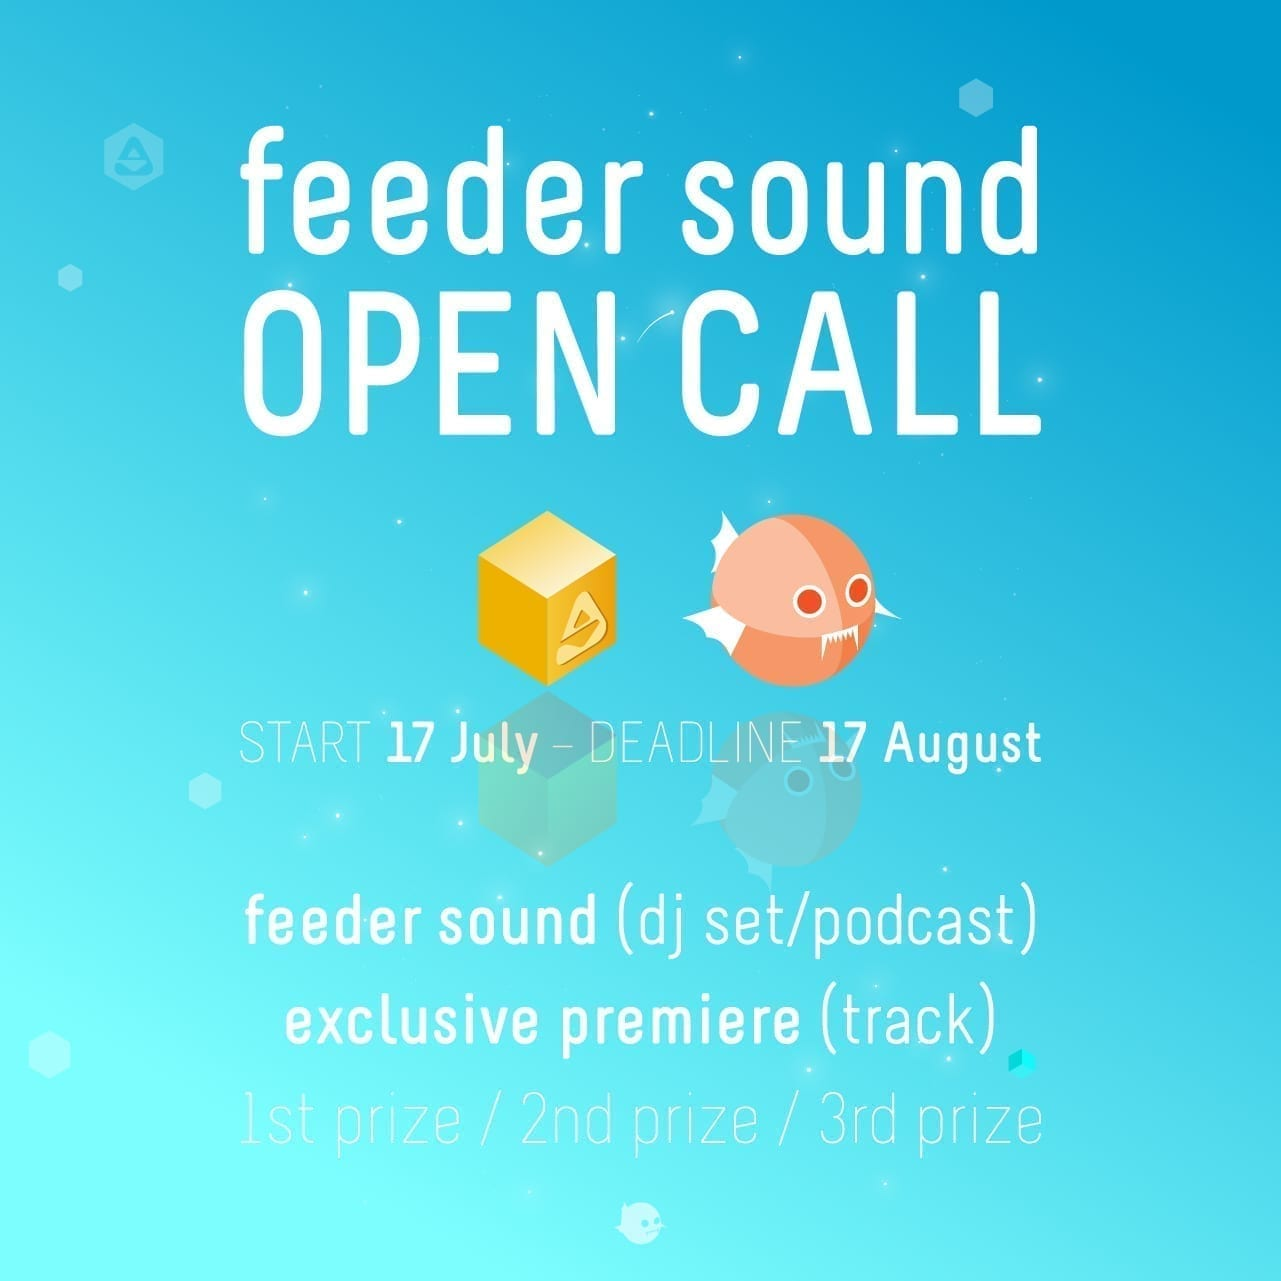 Join the feeder sound OPEN CALL for DJs and producers